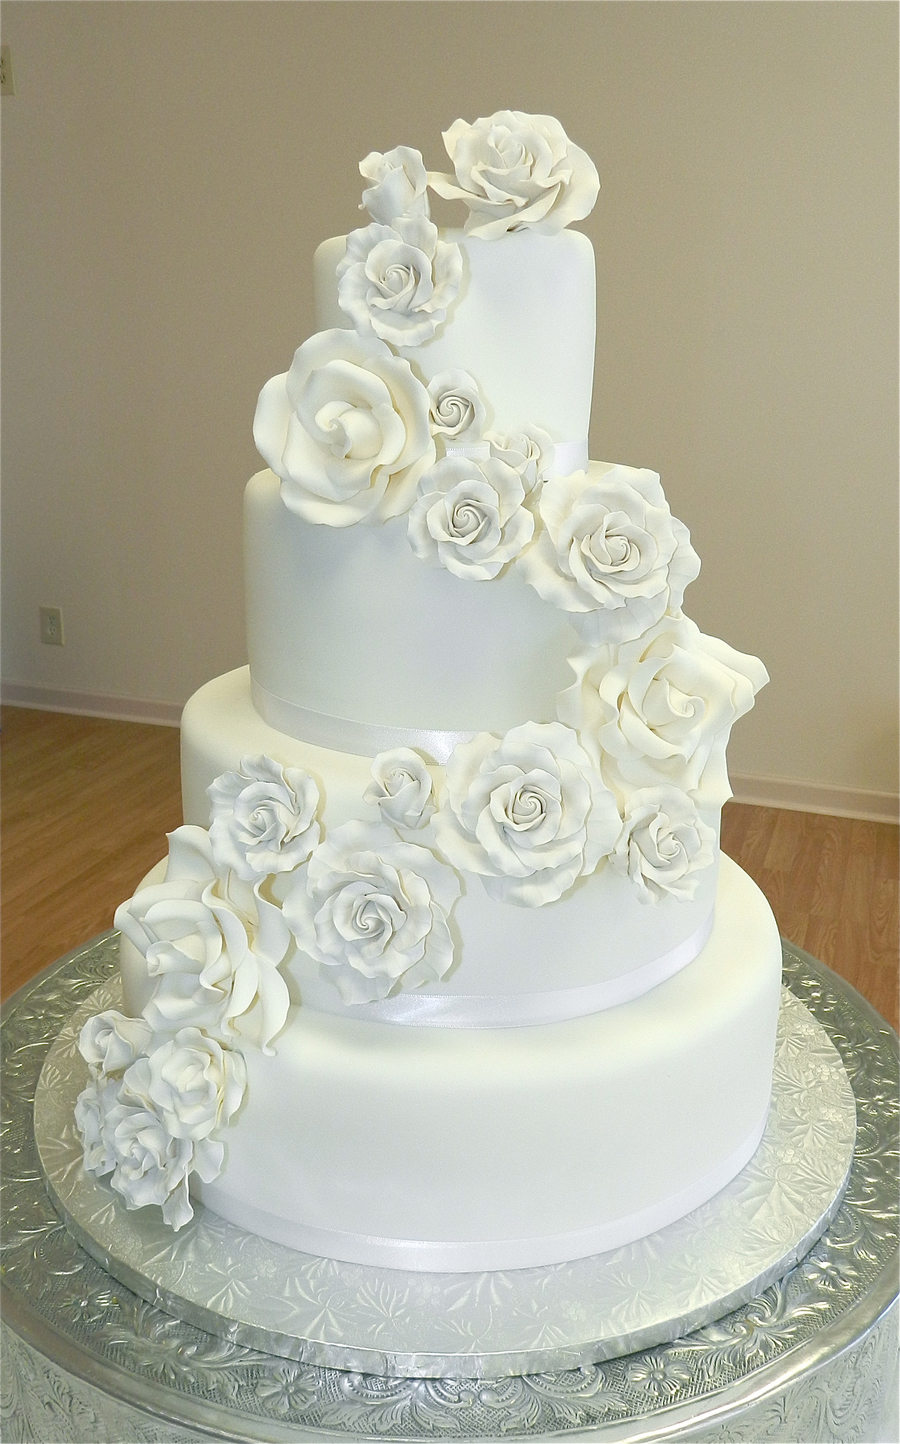 Sugar Rose Cake Design : White Roses Wedding Cake - CakeCentral.com